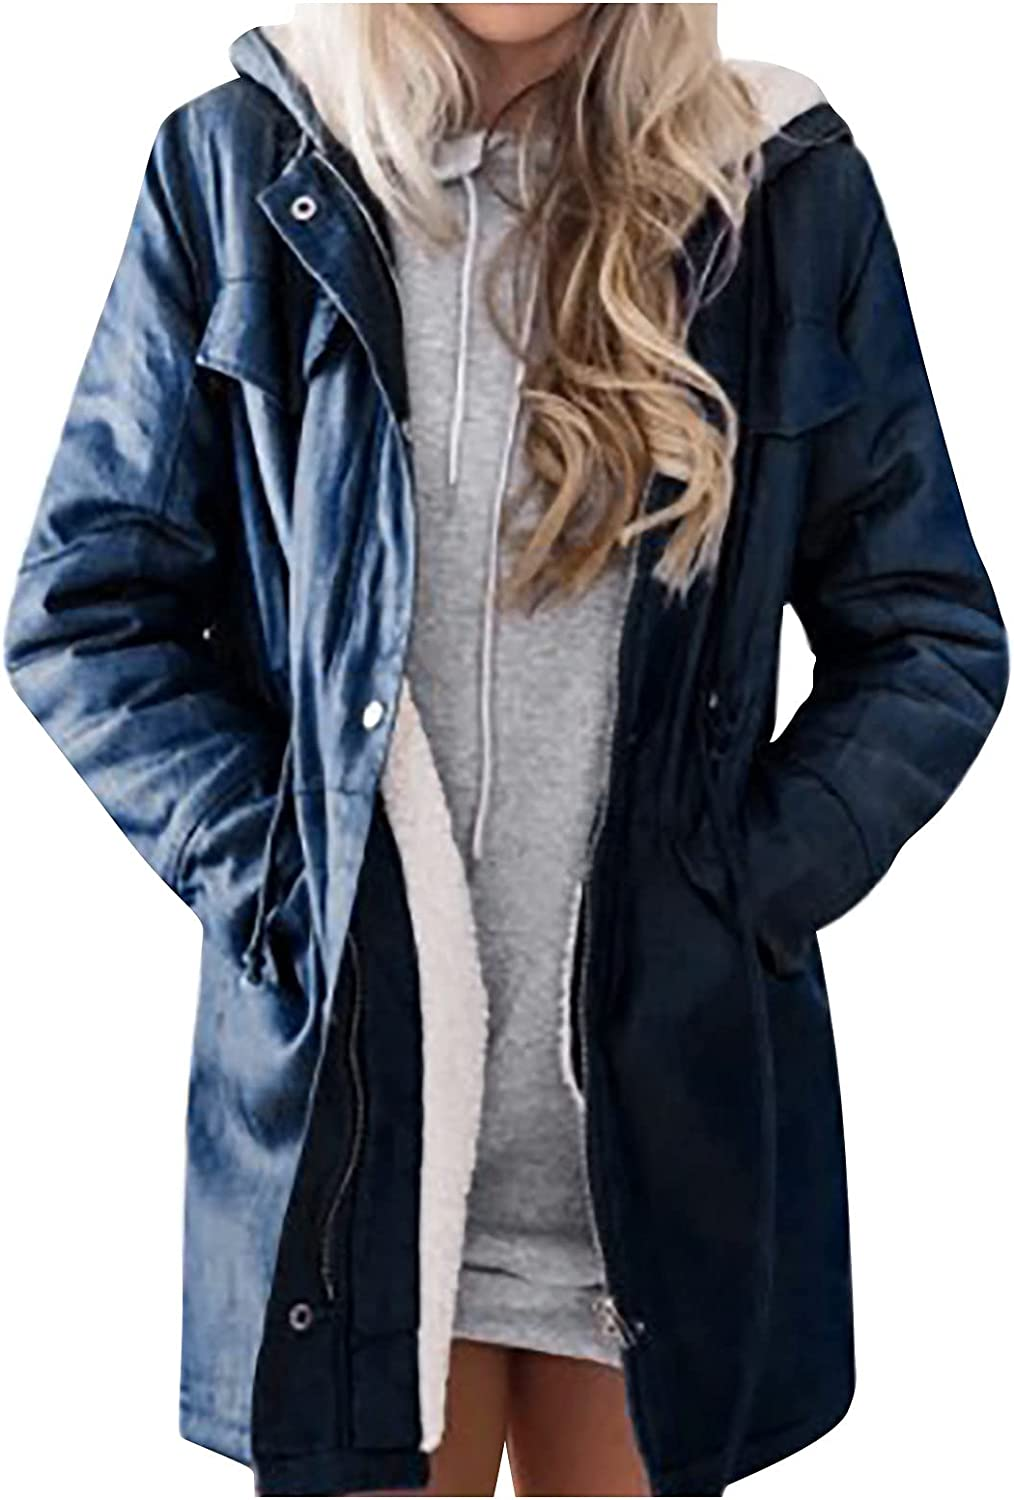 Womens Winter Coats,Womens Winter Down Jackets Hooded Warm Coats Thickened Faux Fur Lined Jacket s-3xl